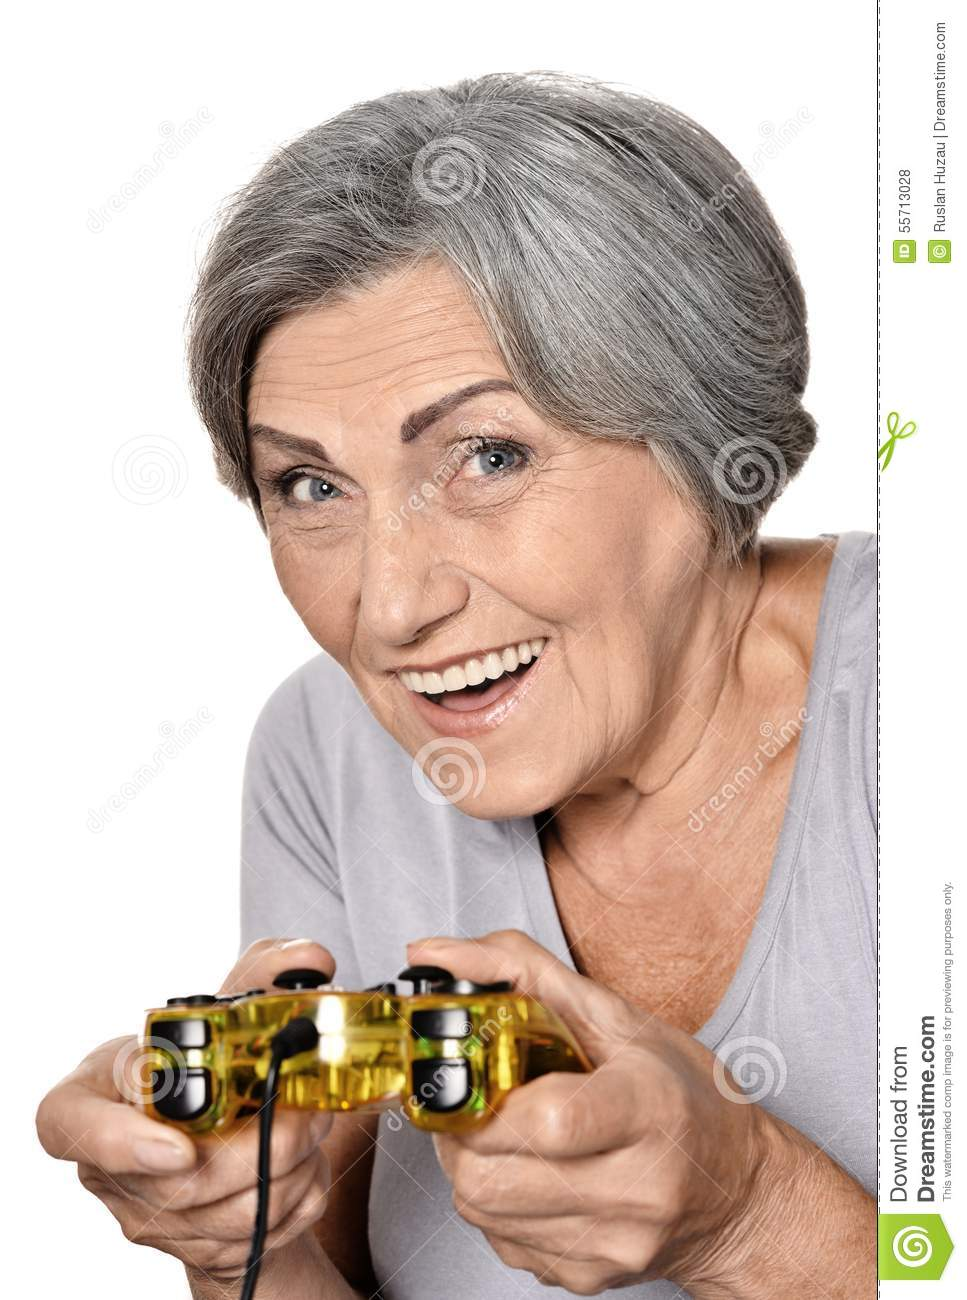 Woman Play Video Game Stock Photo Image Of Alone Game 55713028